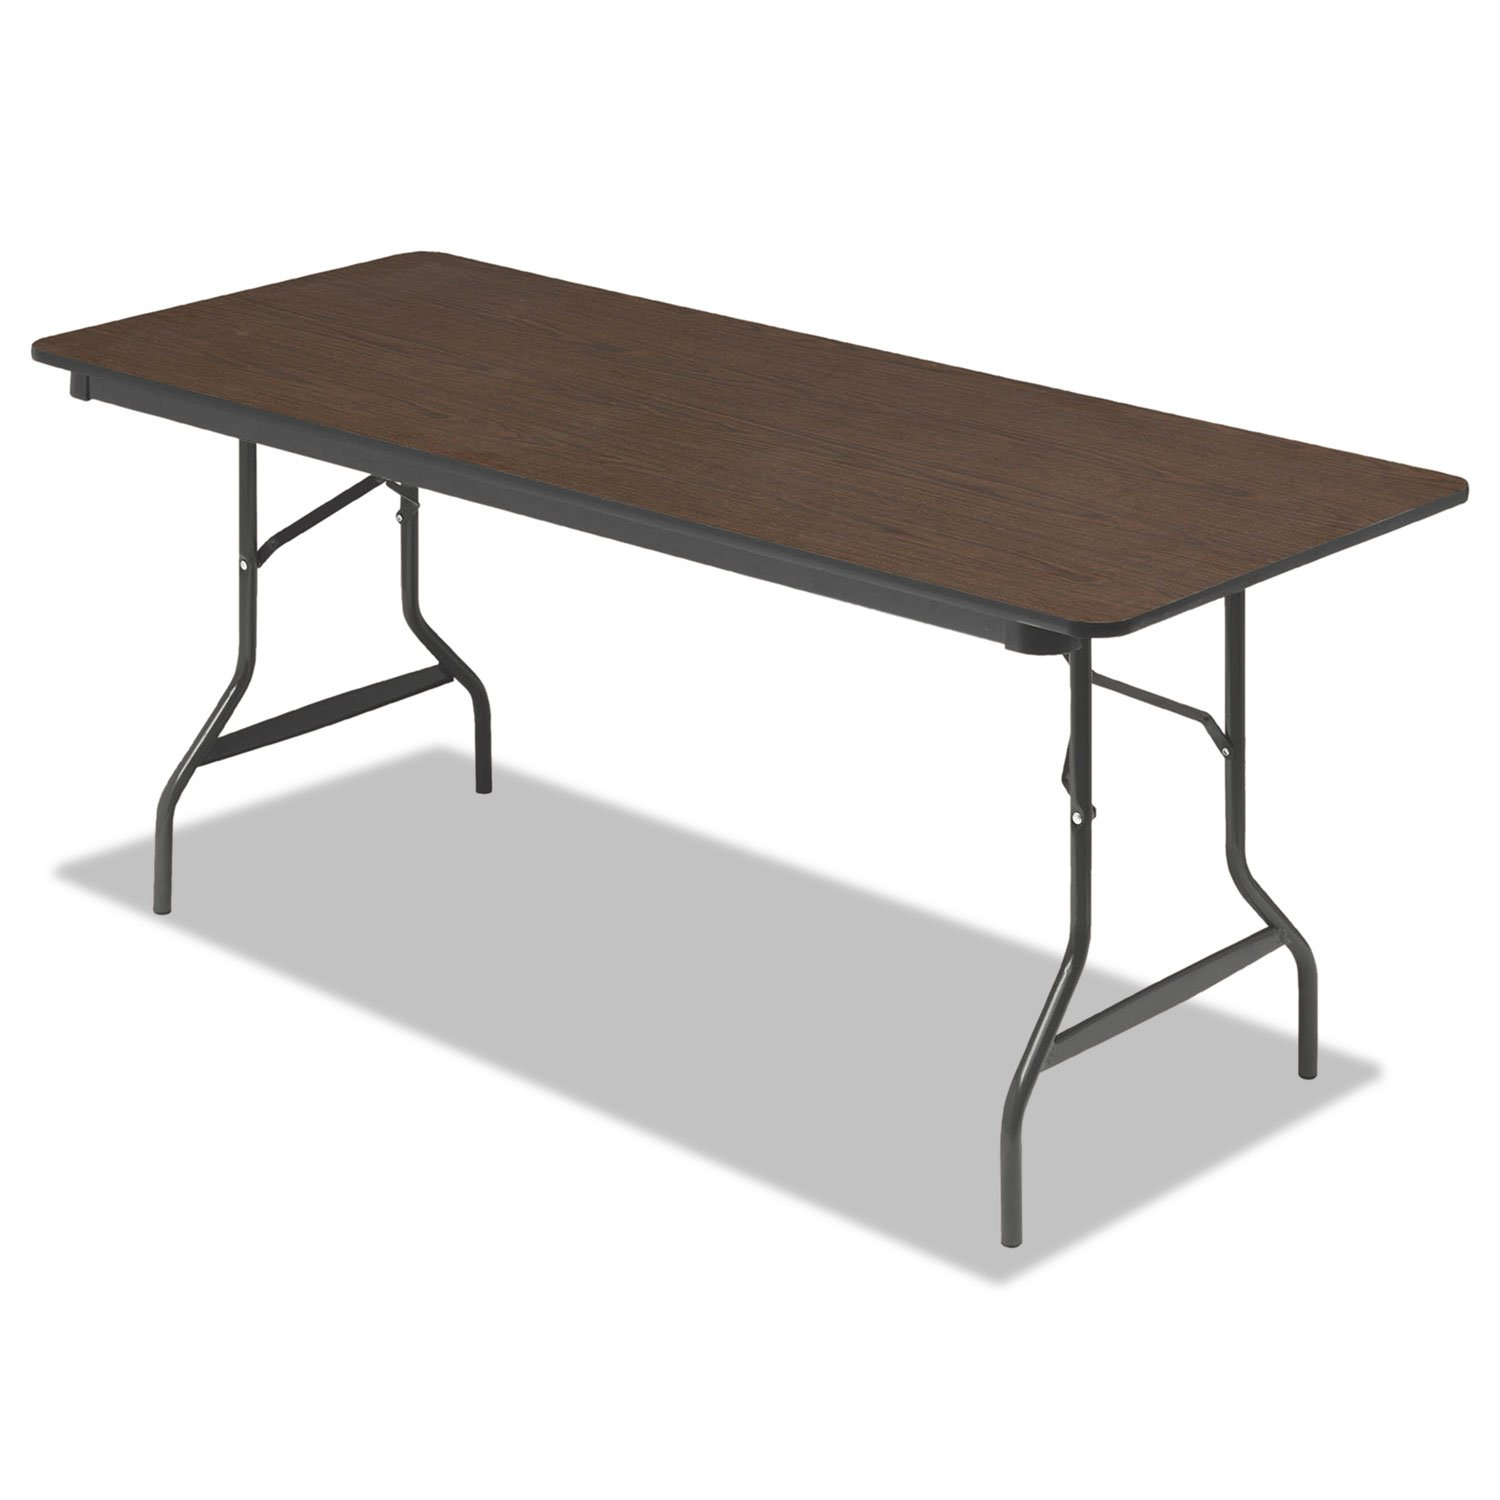 Iceberg 55324 Economy Wood Laminate Folding Table, Rectangular, 72w x 30d x 29h, Walnut